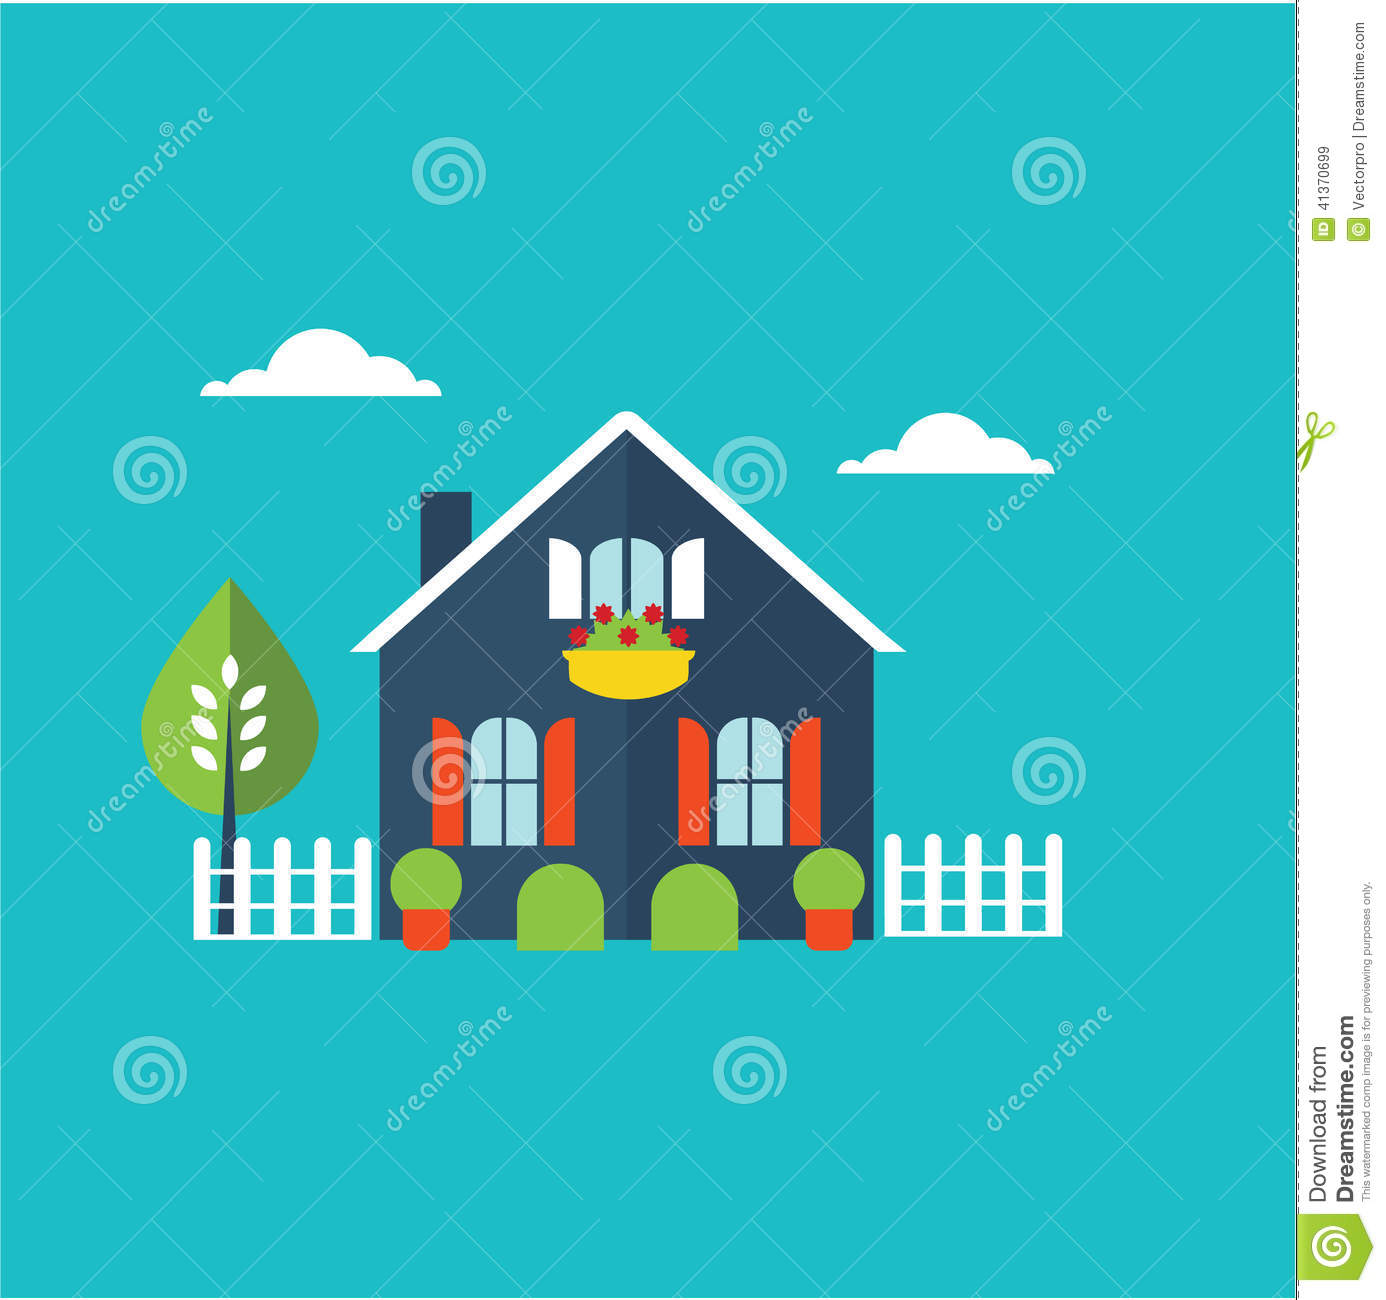 House Home Illustration Stock Vector Image 41370699